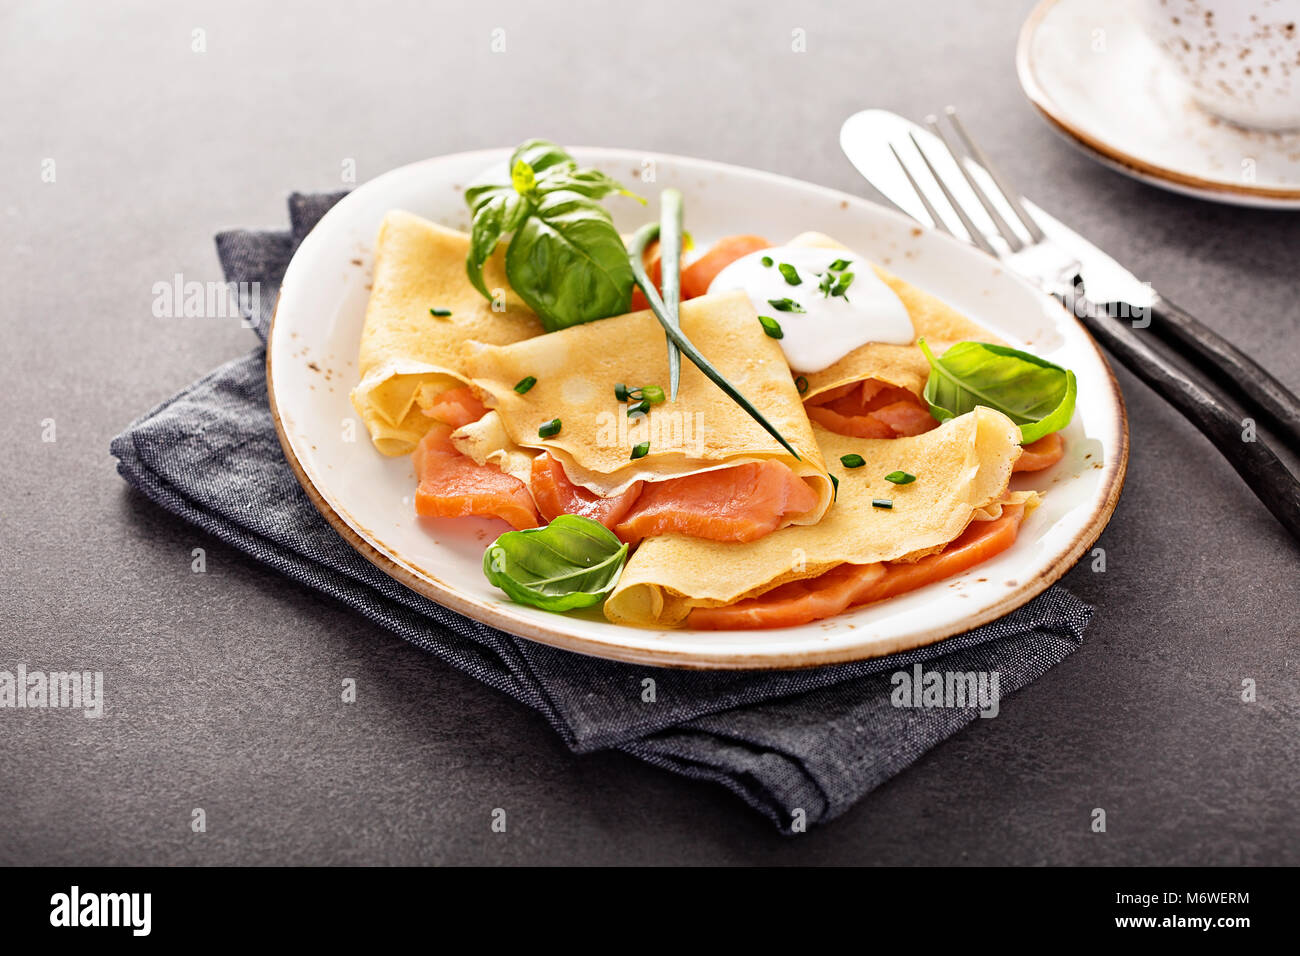 Savory crepes with salmon filling and sour cream - Stock Image